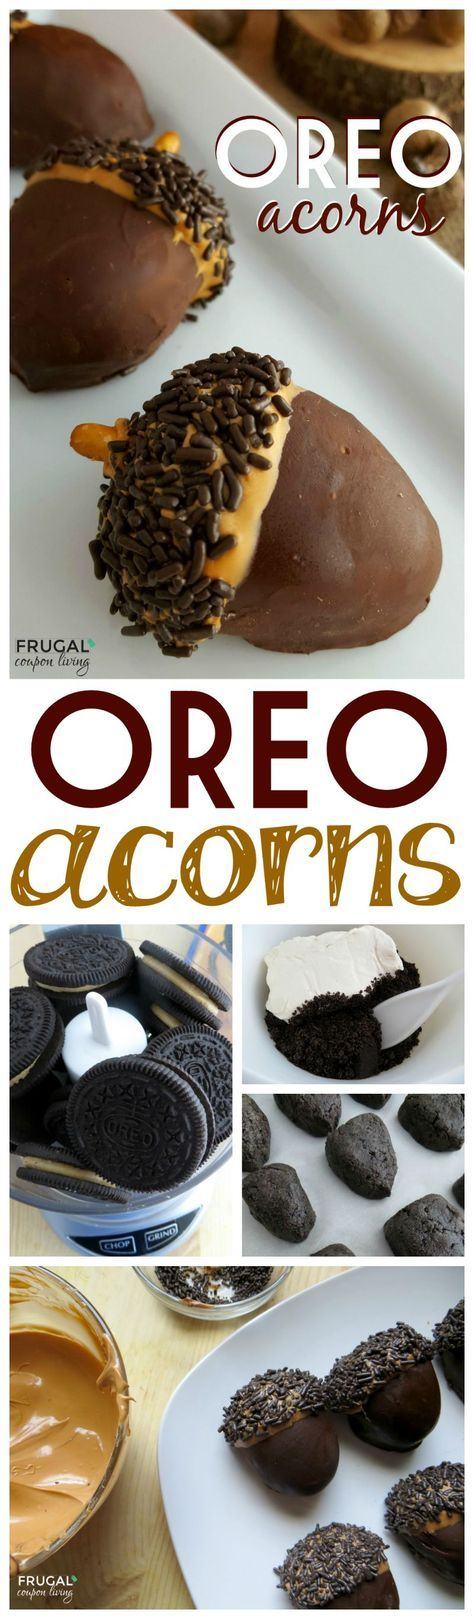 Fall Kid's Food Craft - easy to make Edible OREO Acorns. Recipe details on Frugal Coupon Living. This is a great fall recipe for kids, they would be adorable at the Thanksgiving Dessert Table!